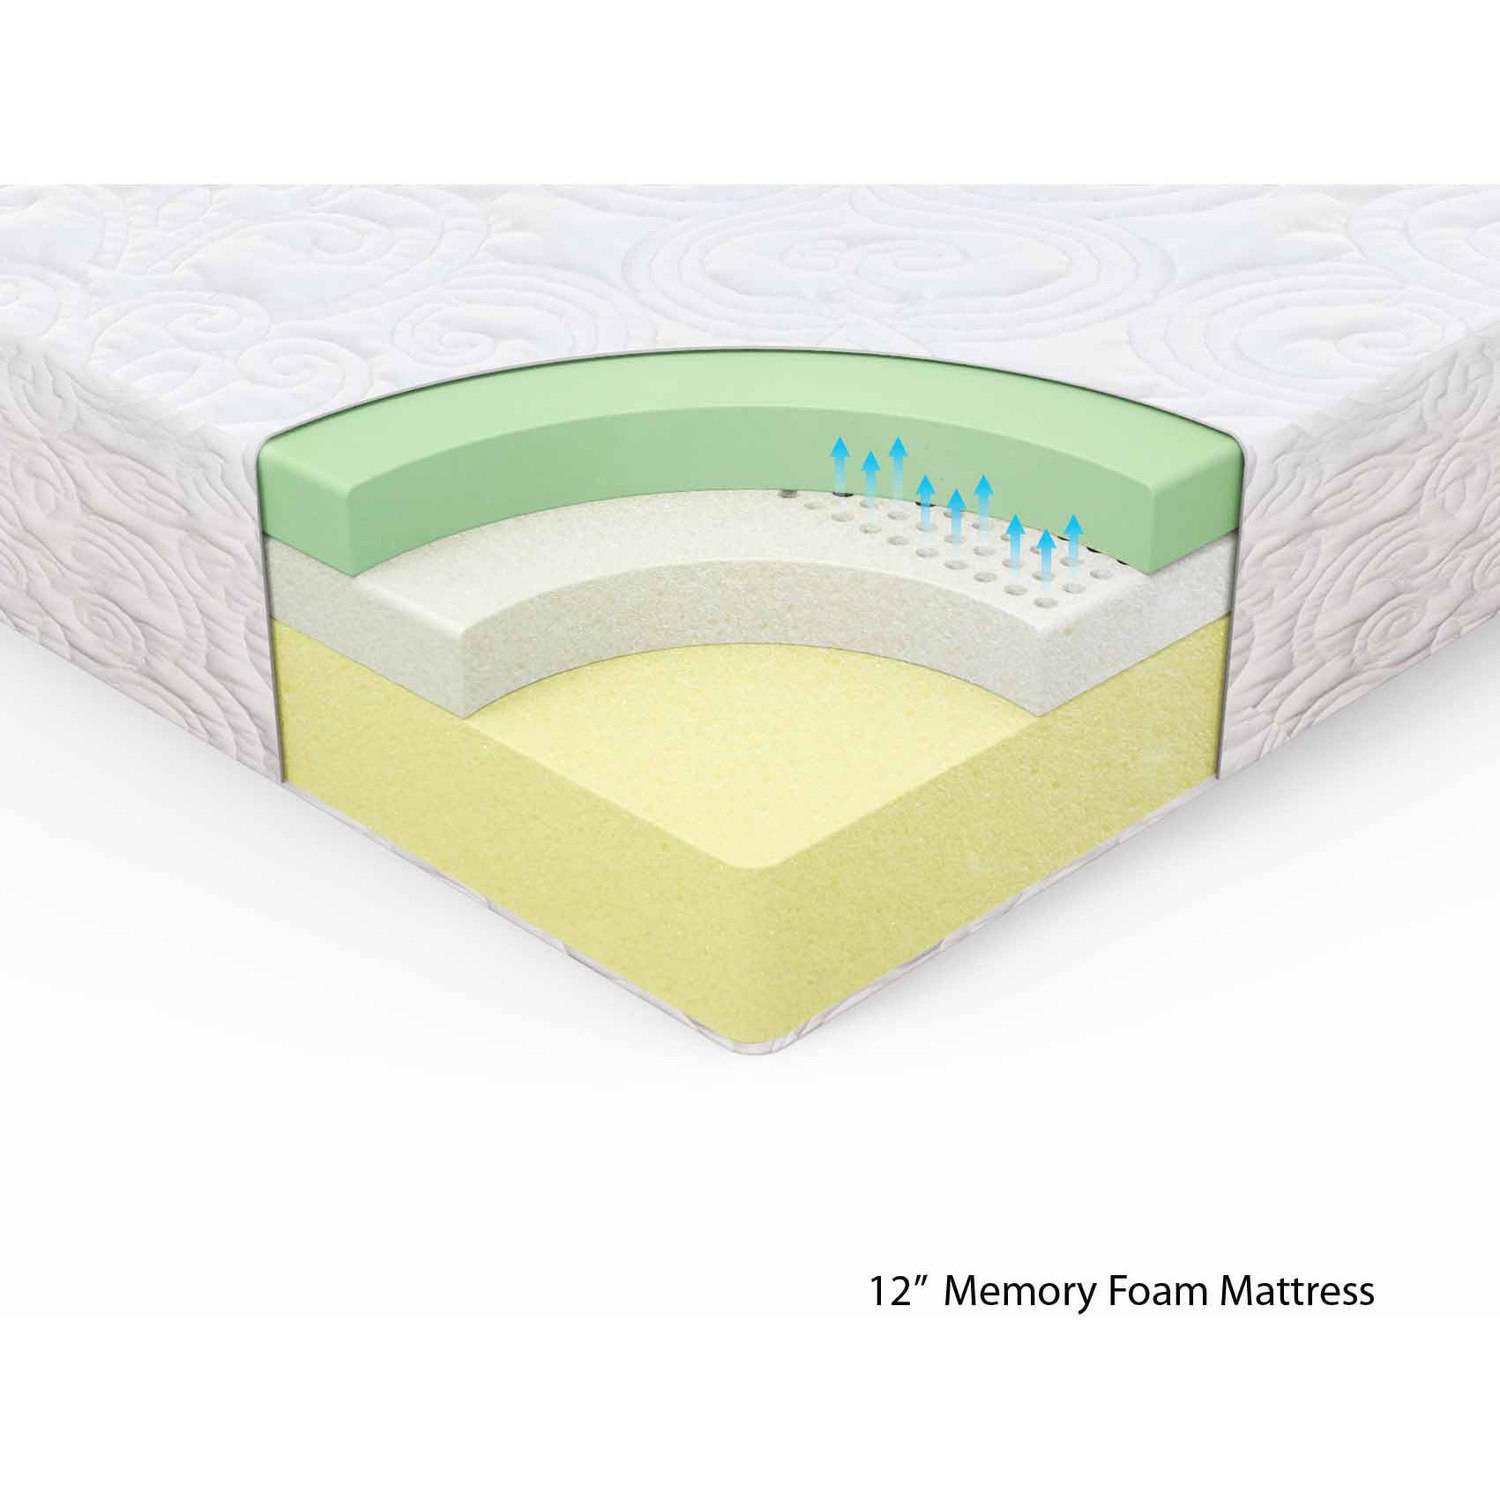 mattresses mattress memory hover foam platinum to zoom kayflex